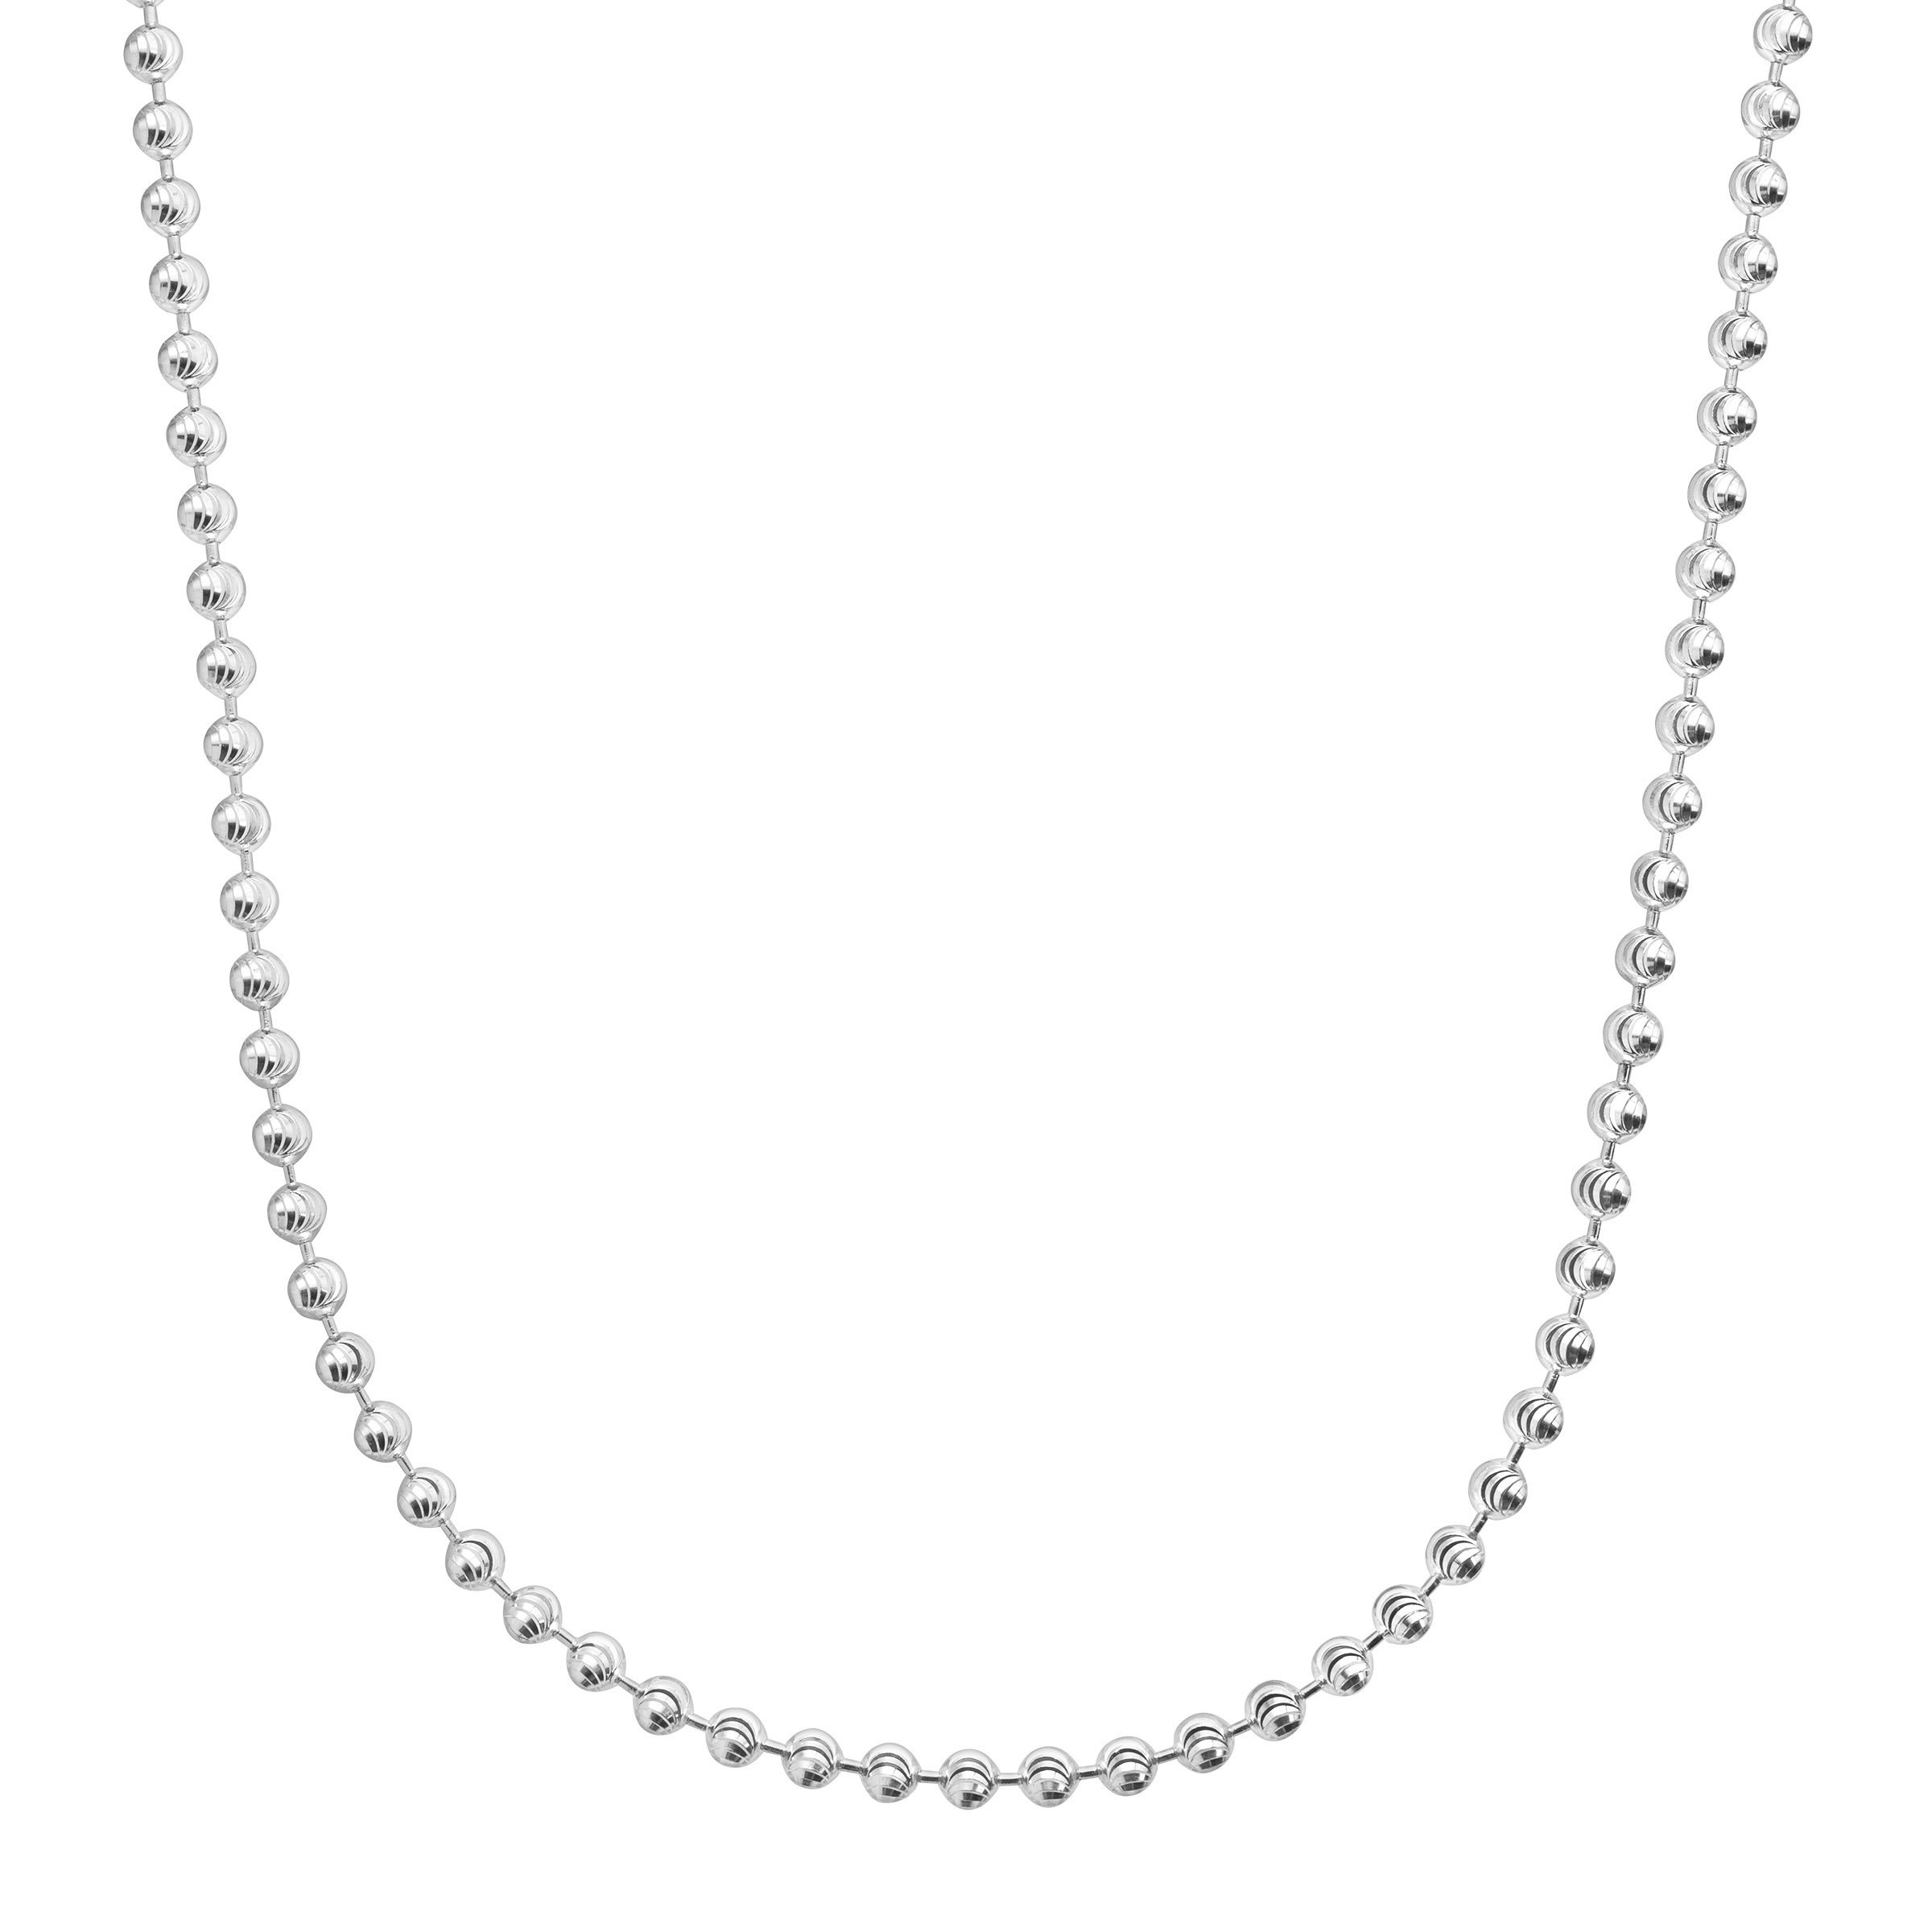 Silpada 'Valentina' Beaded Necklace in Sterling Silver